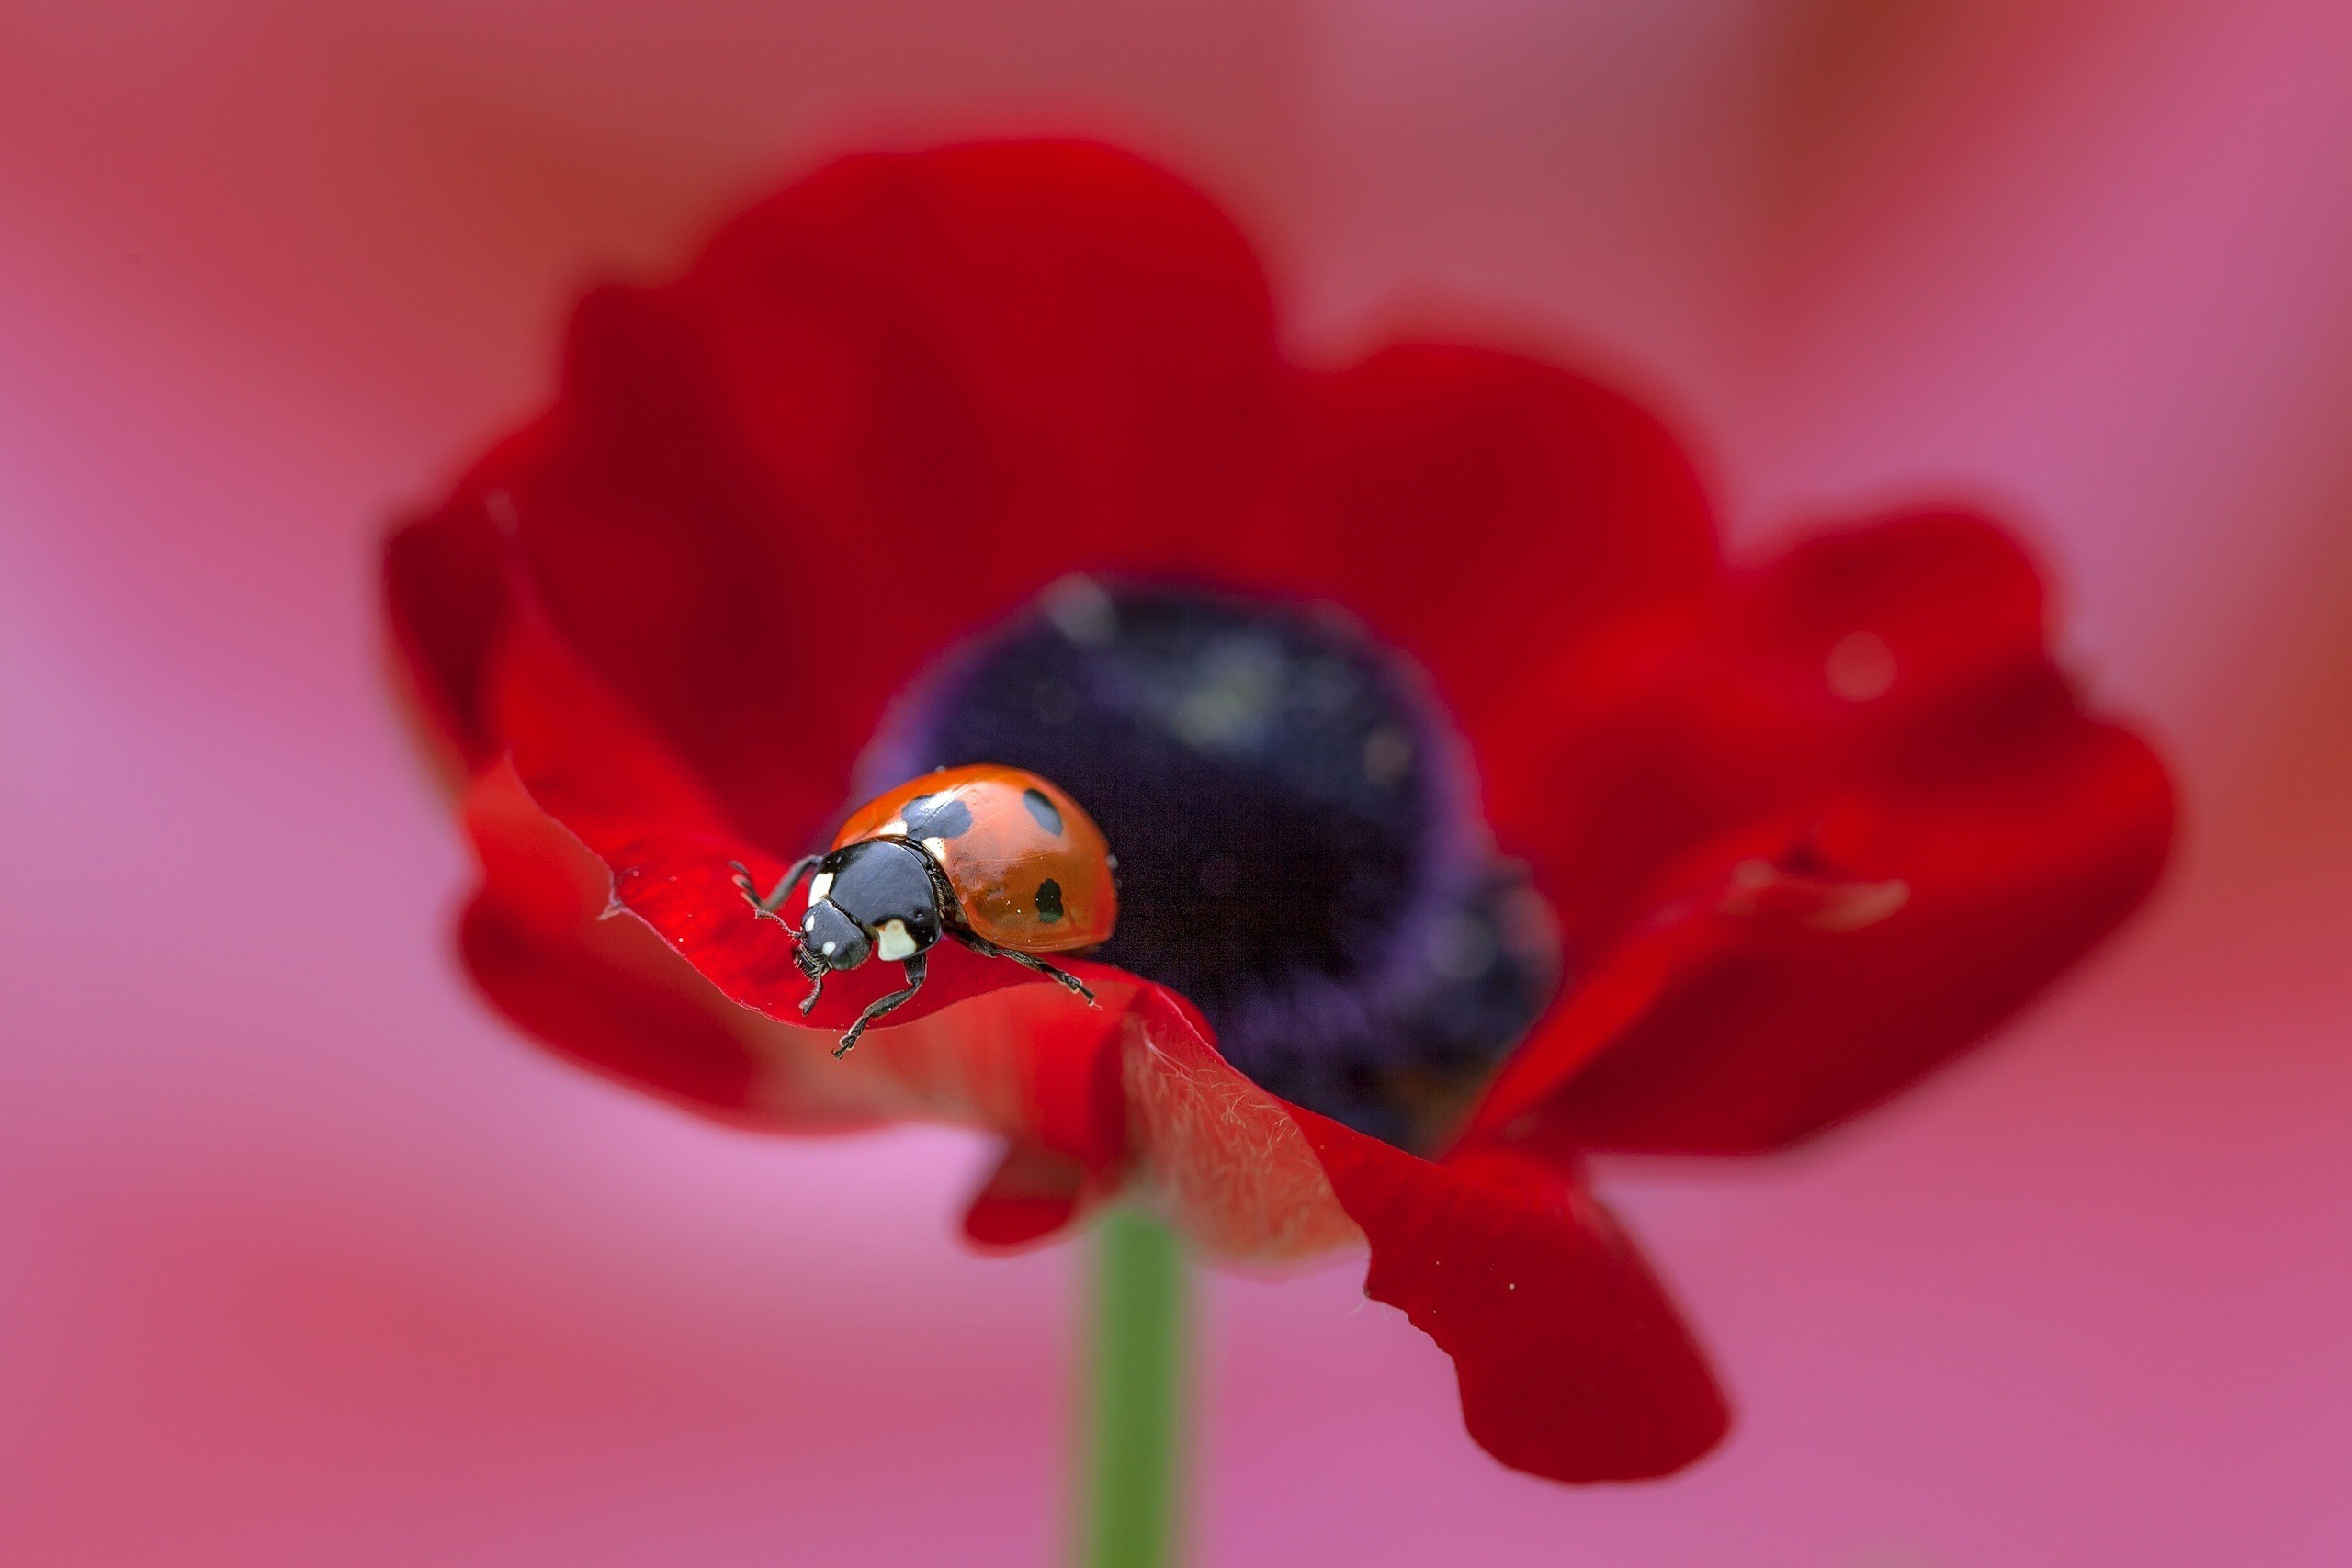 Cute Poppy 1080p Wallpaper Ladybug On Flower Wallpaper Nature And Landscape